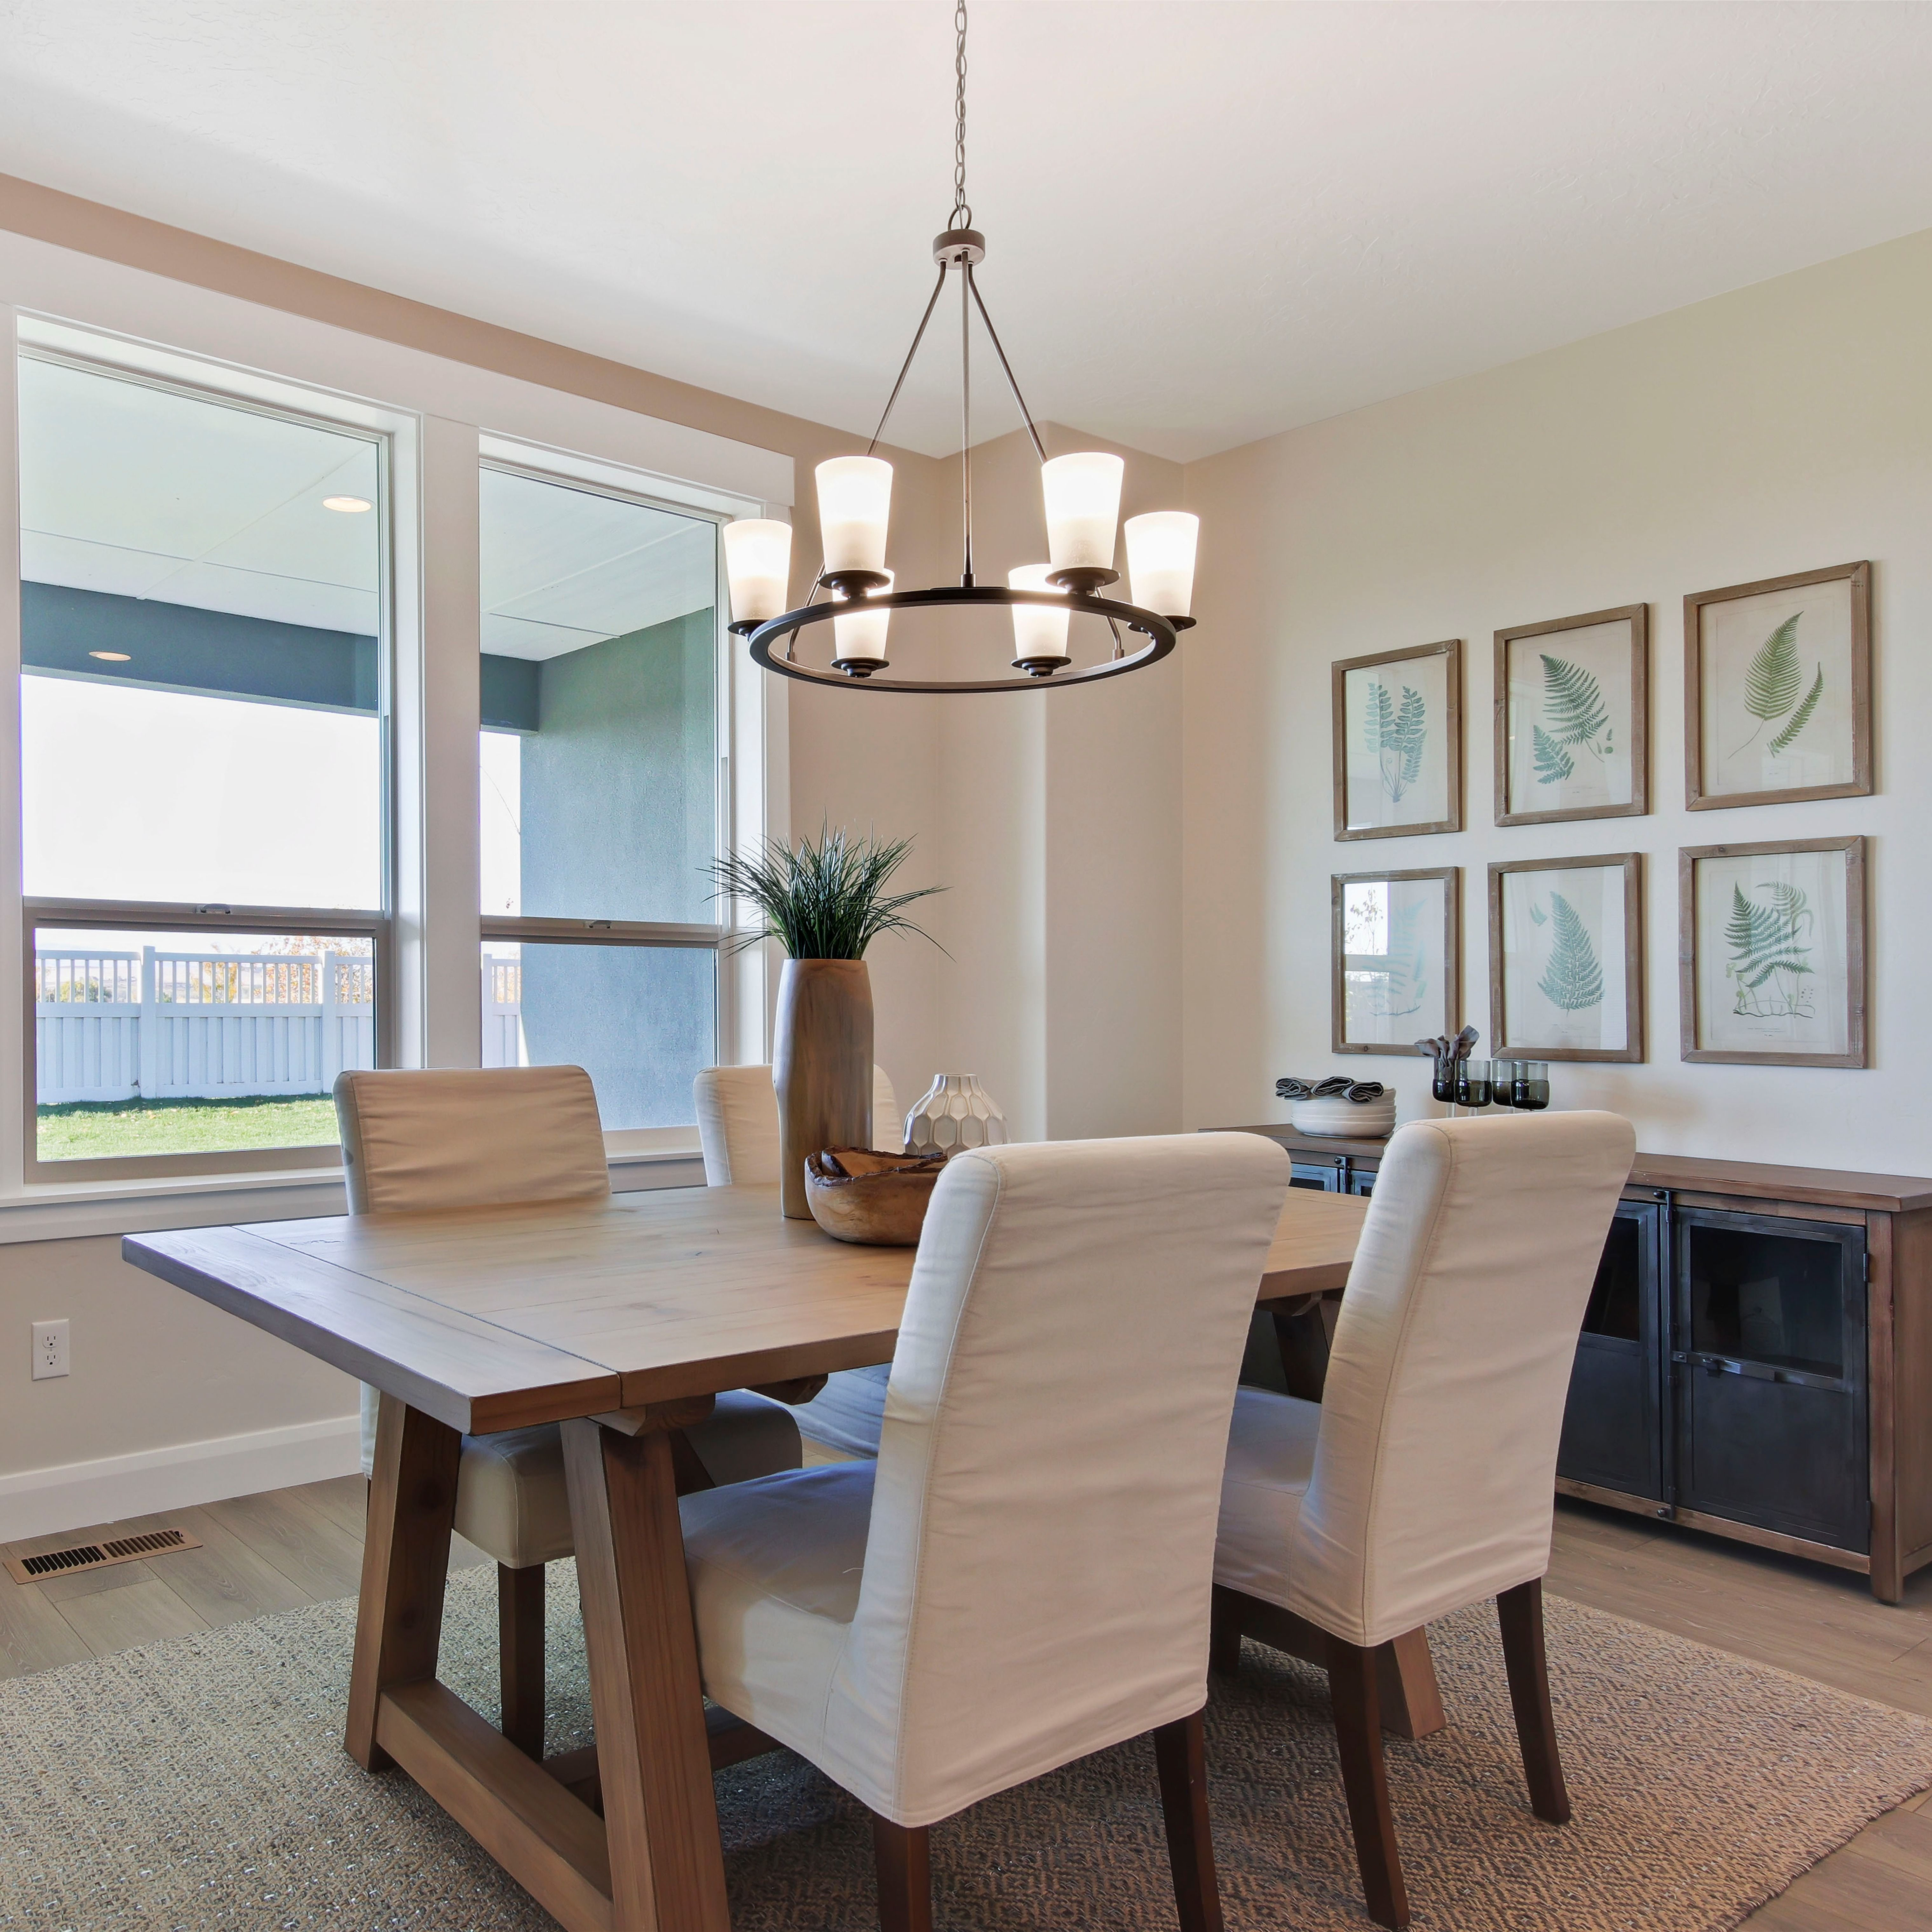 Vintage Modern Chandelier Featured In Custom Home Dining Room Design With Natural Decor Elements Dining Room Spaces Dining Room Design Room Design